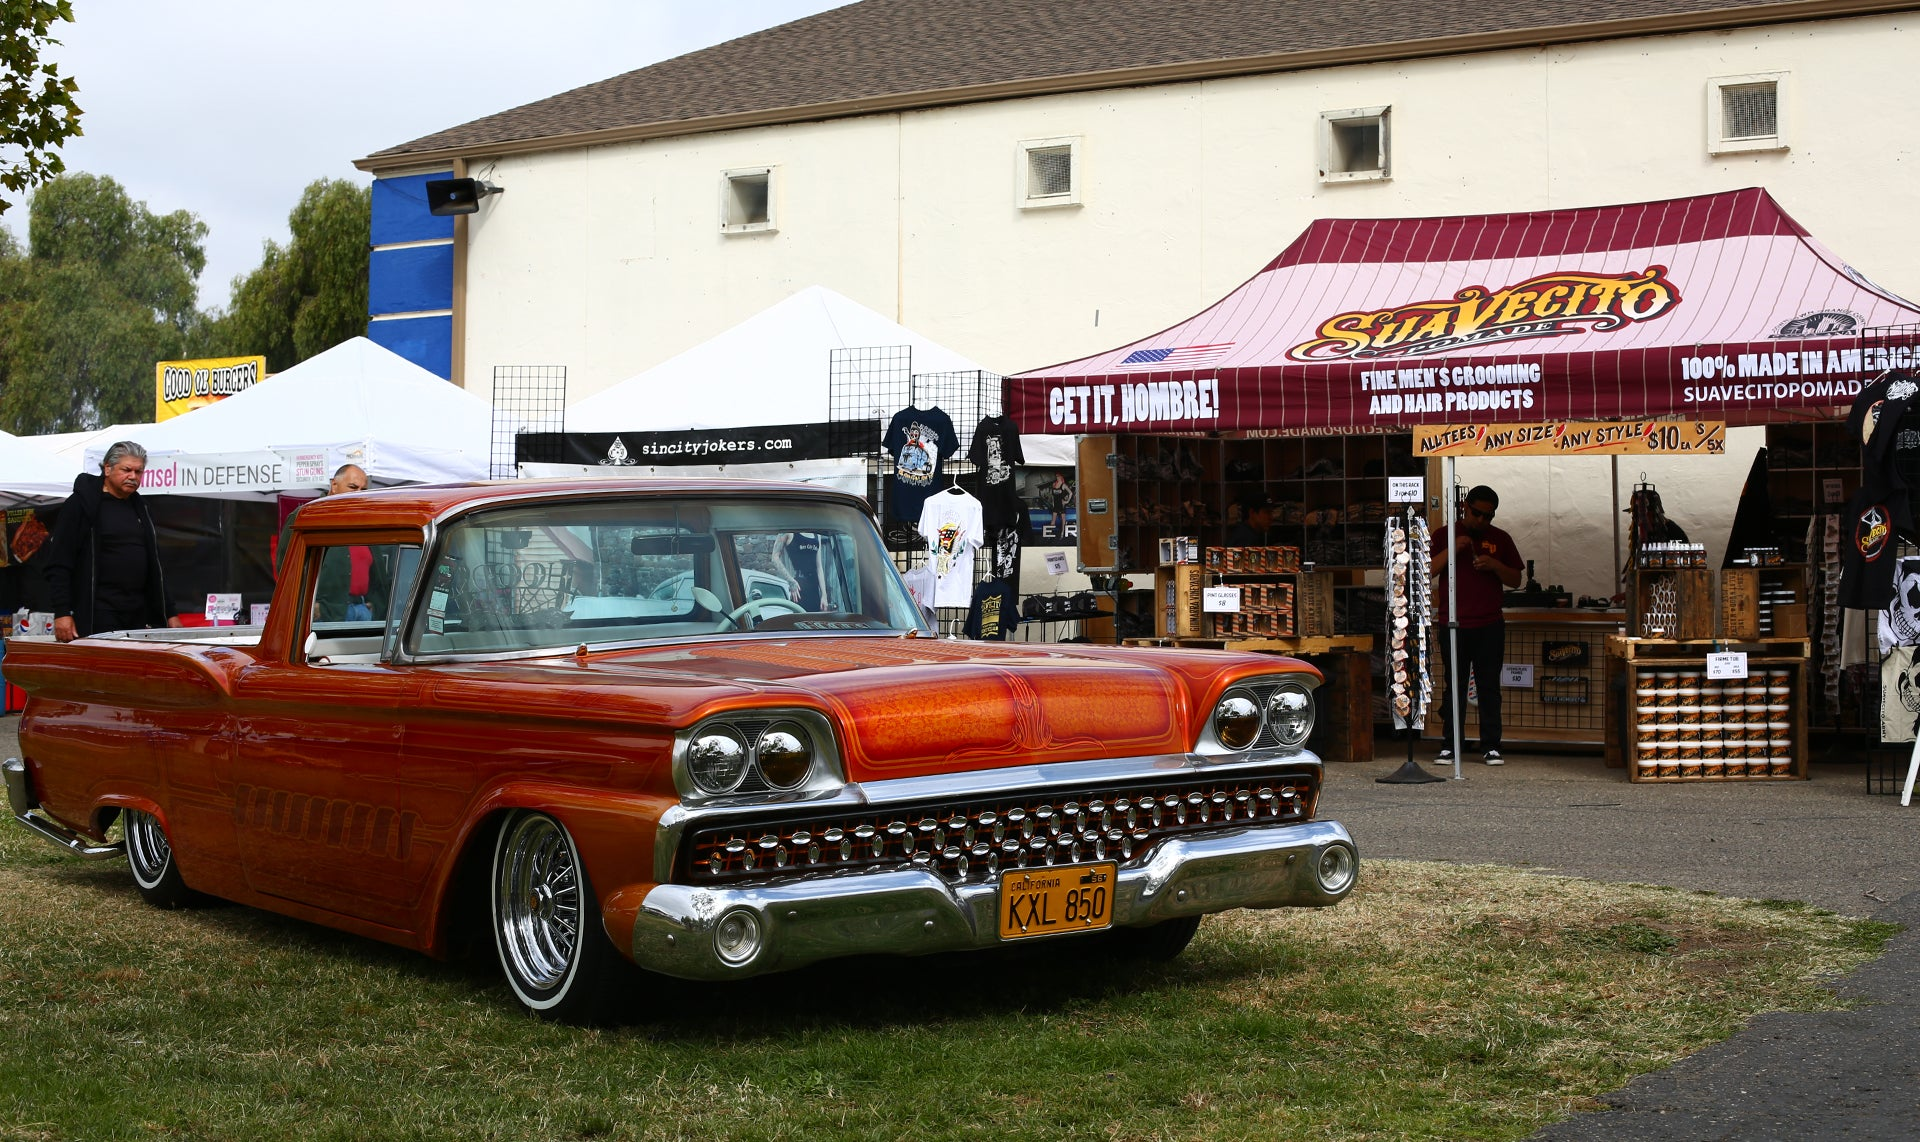 1959 Ford Ranchero Posted in front of the Suavecito Pomade Booth